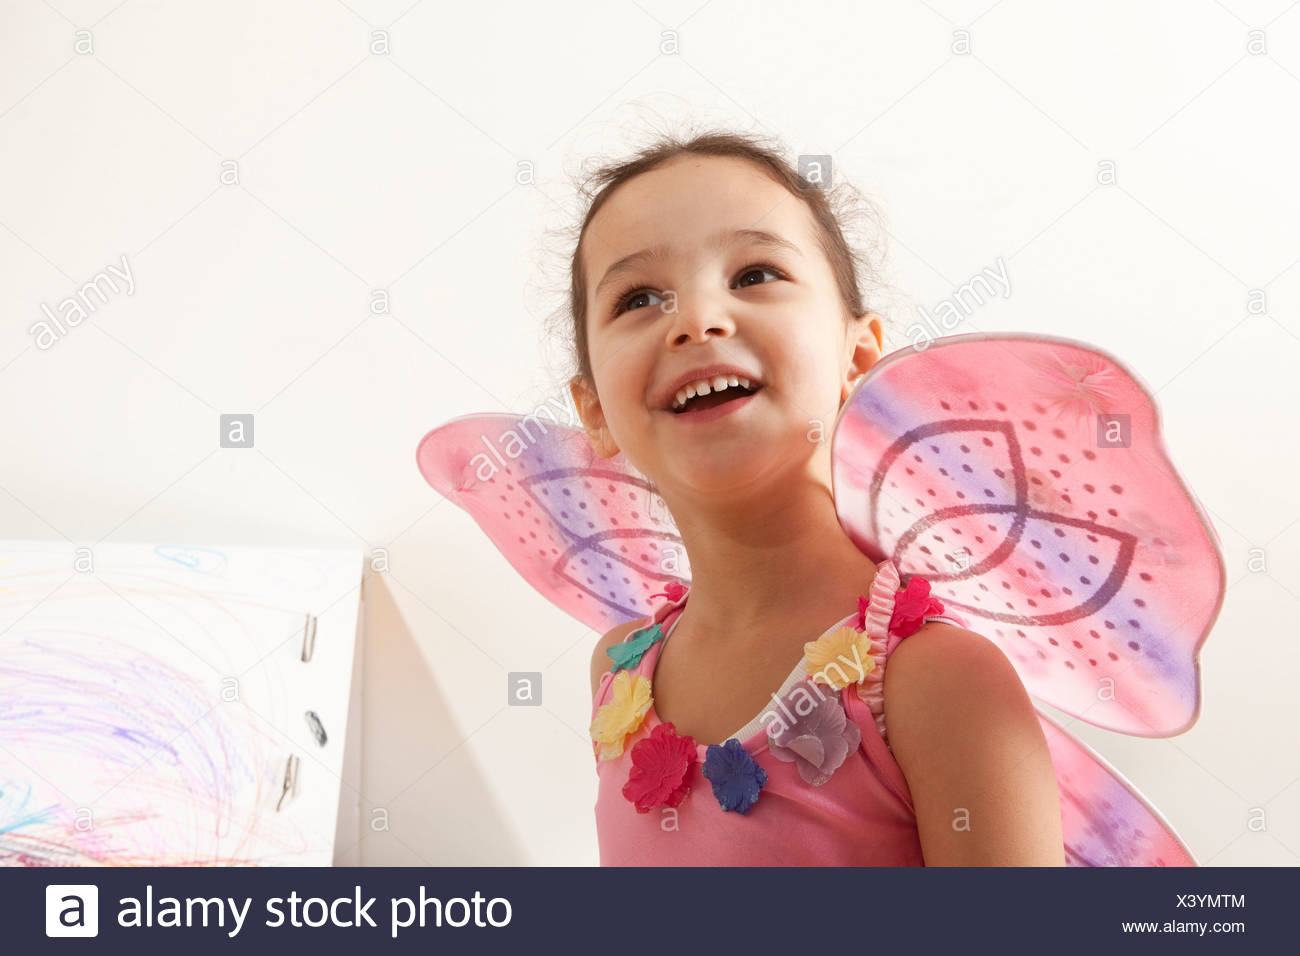 Little girl with fairy costume - Stock Image